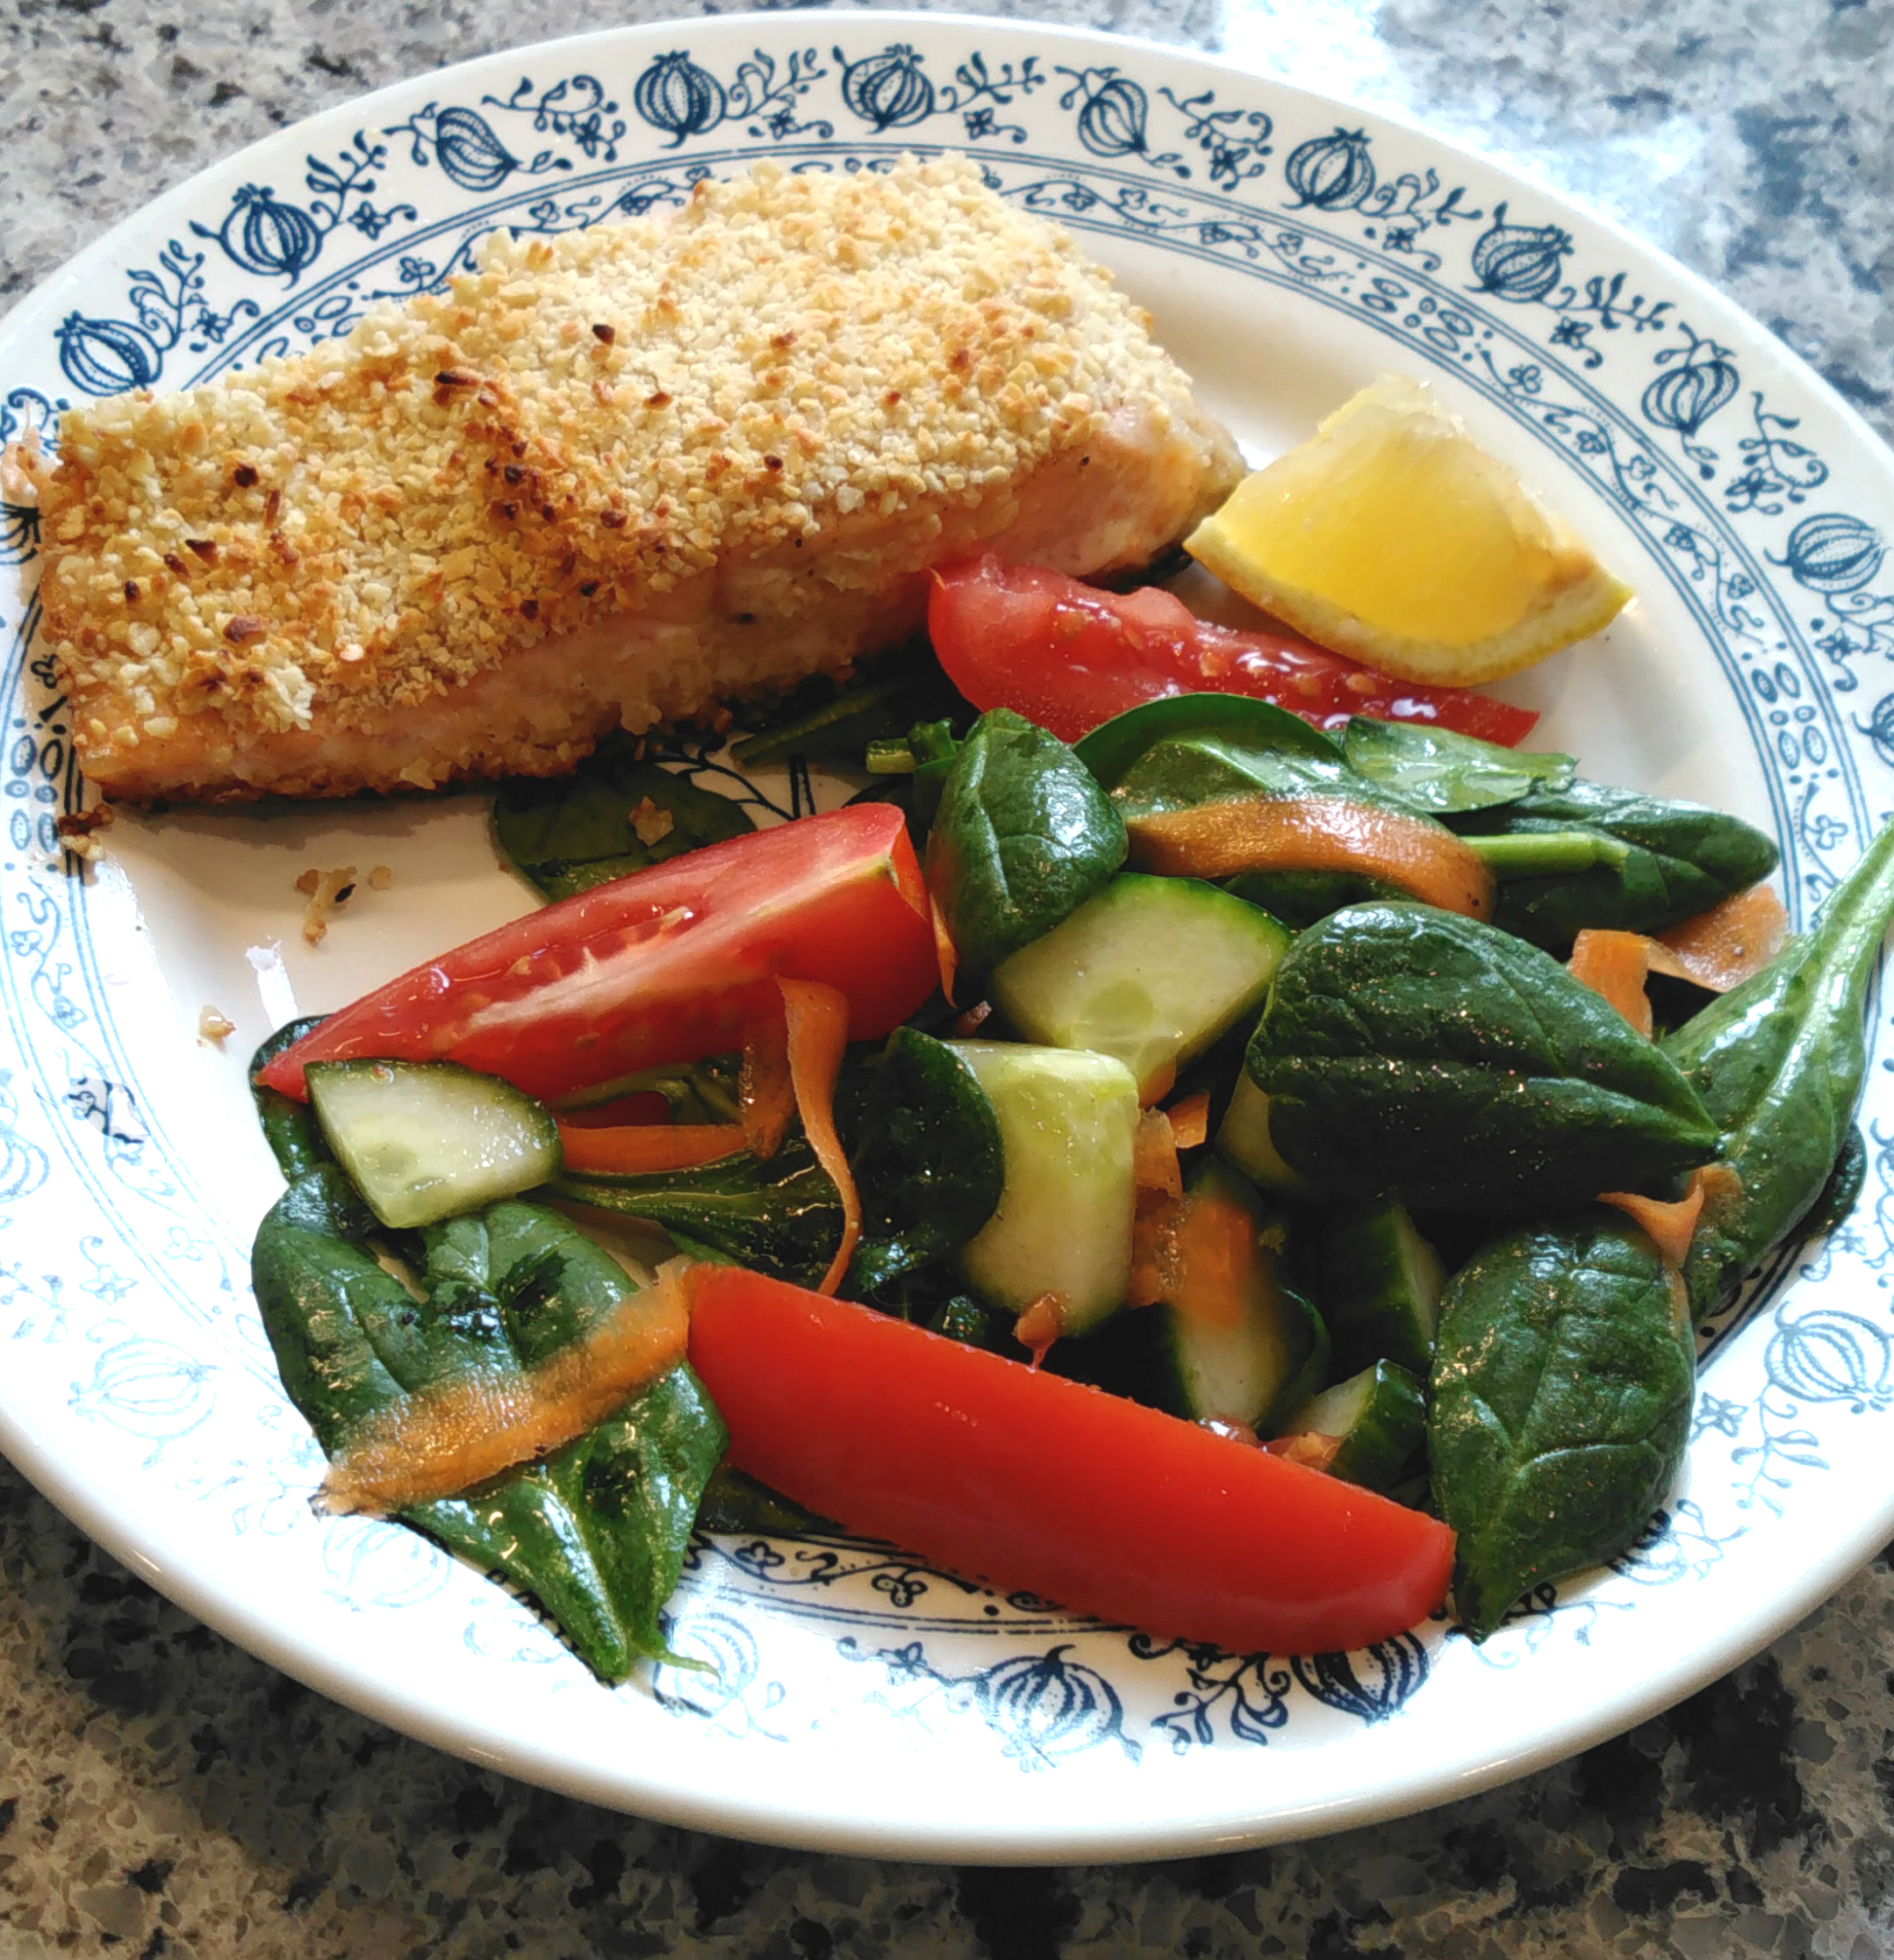 Almond-Crusted Salmon and Salad